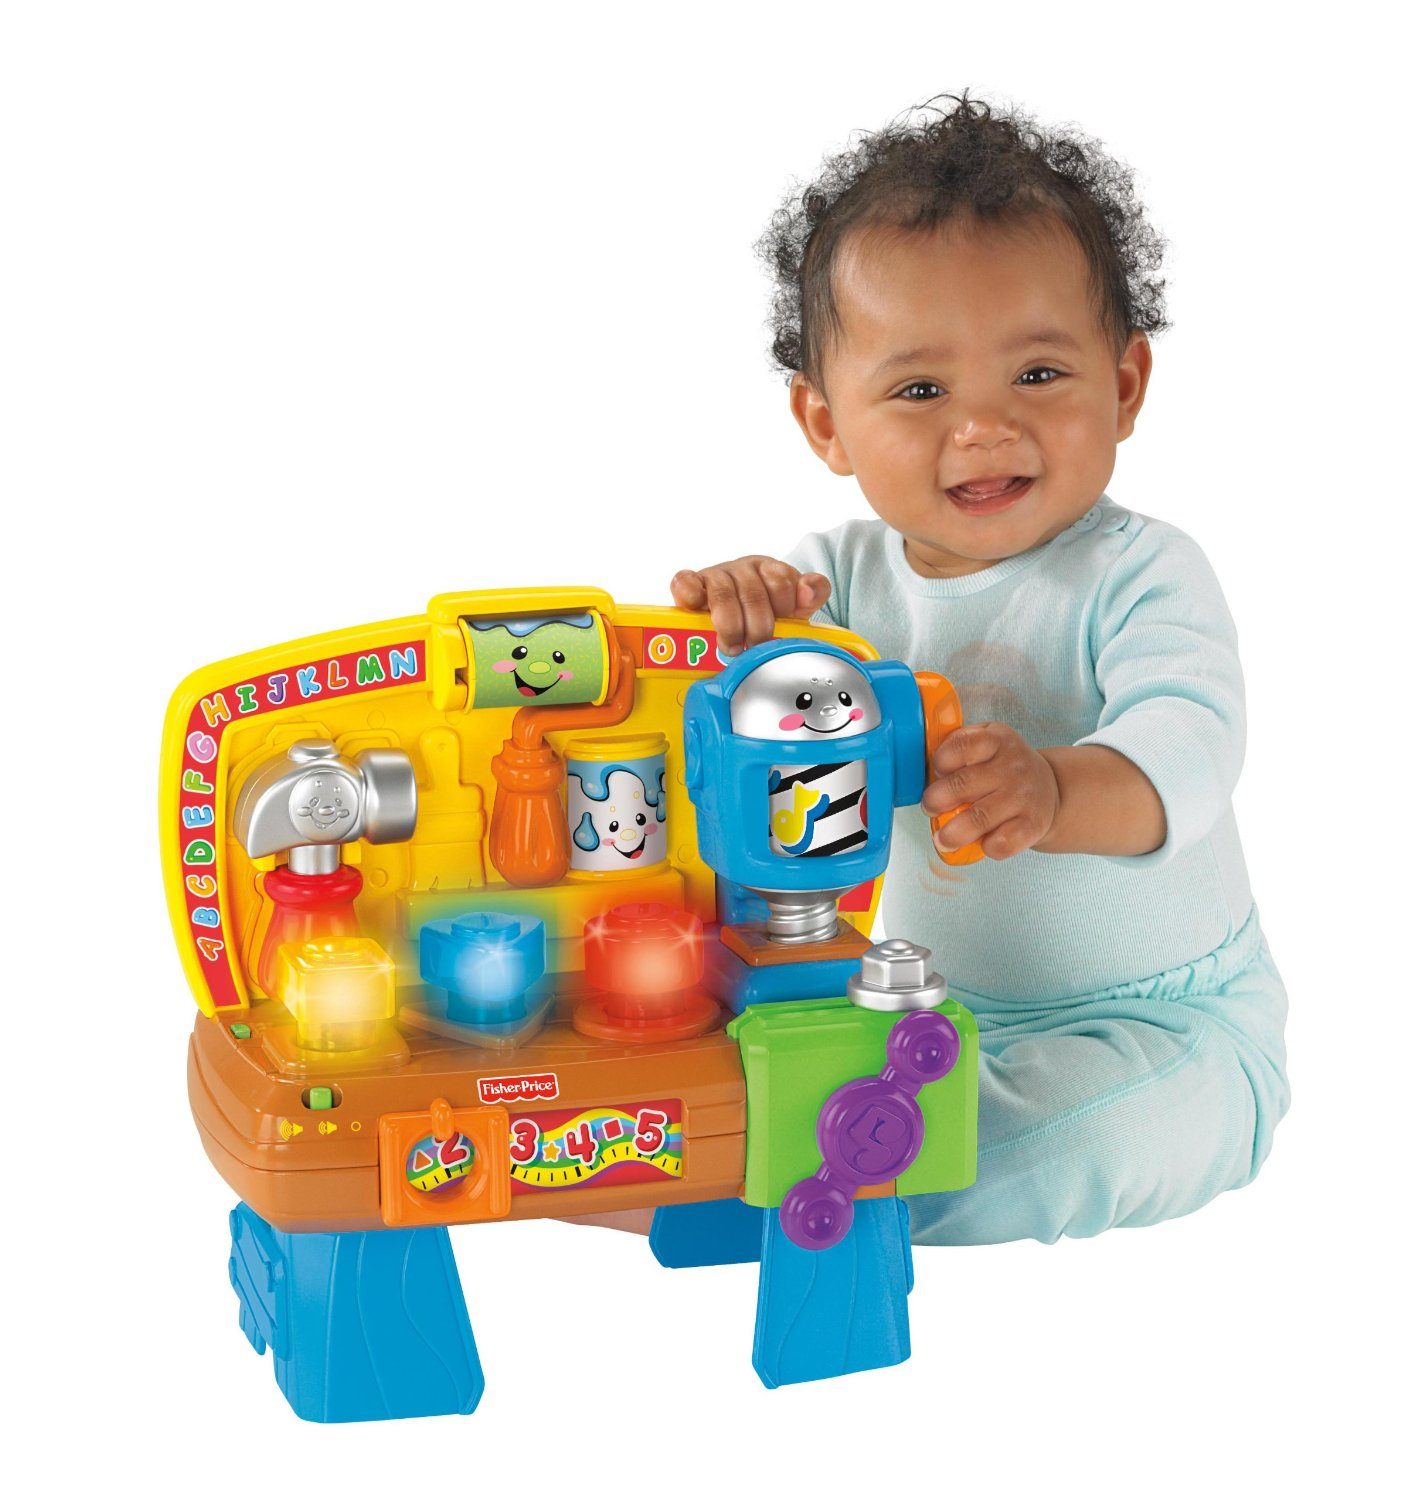 Top Three Toys Of 2012 : Best gifts ideas for one year old boys first birthday